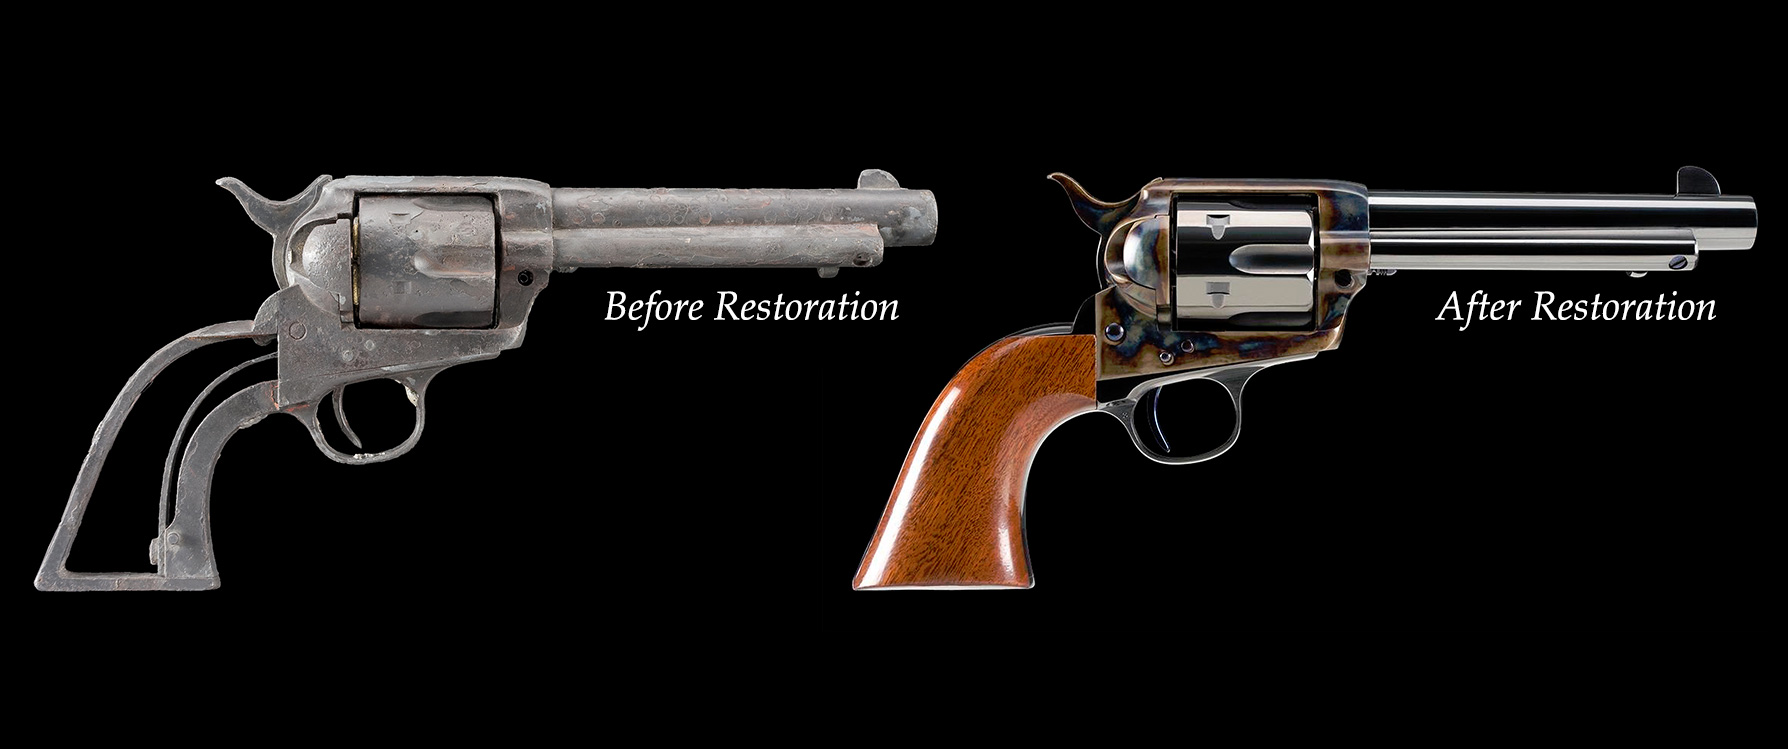 Photo of fire damaged Colt SAA before and after firearm restoration